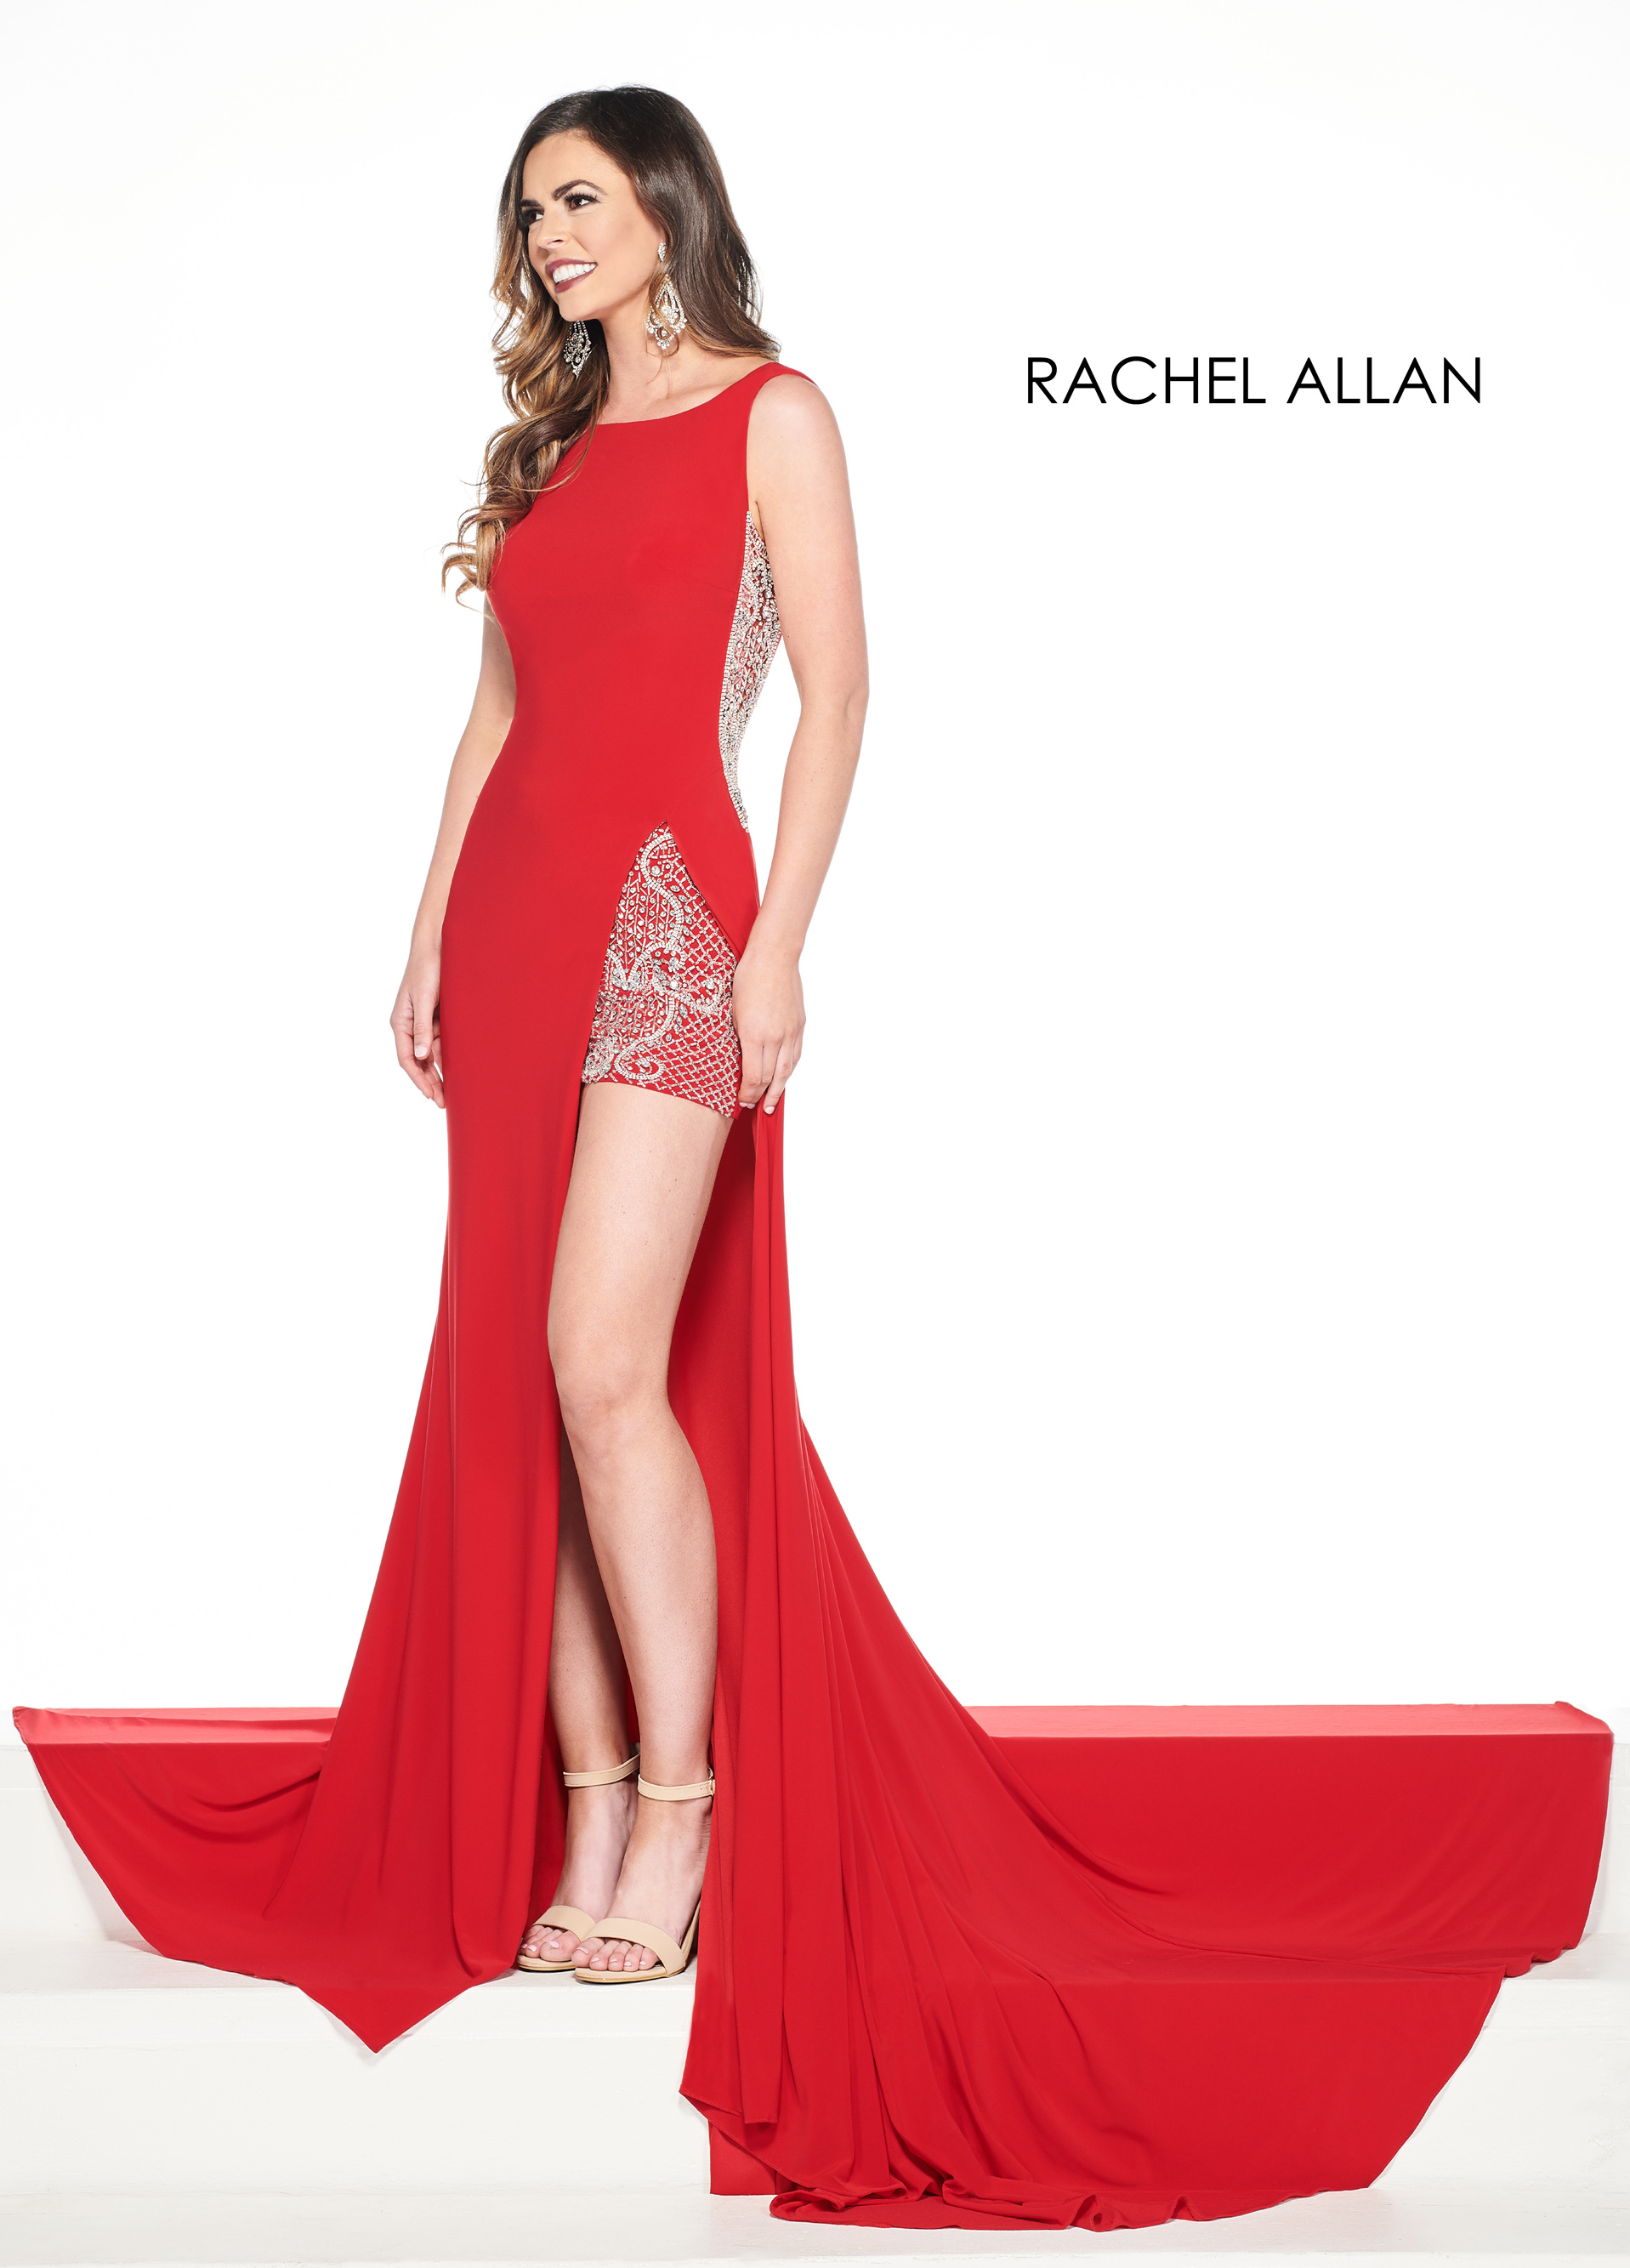 Scoop Neck Shorts With Overlay Pageant Dresses in Red Color